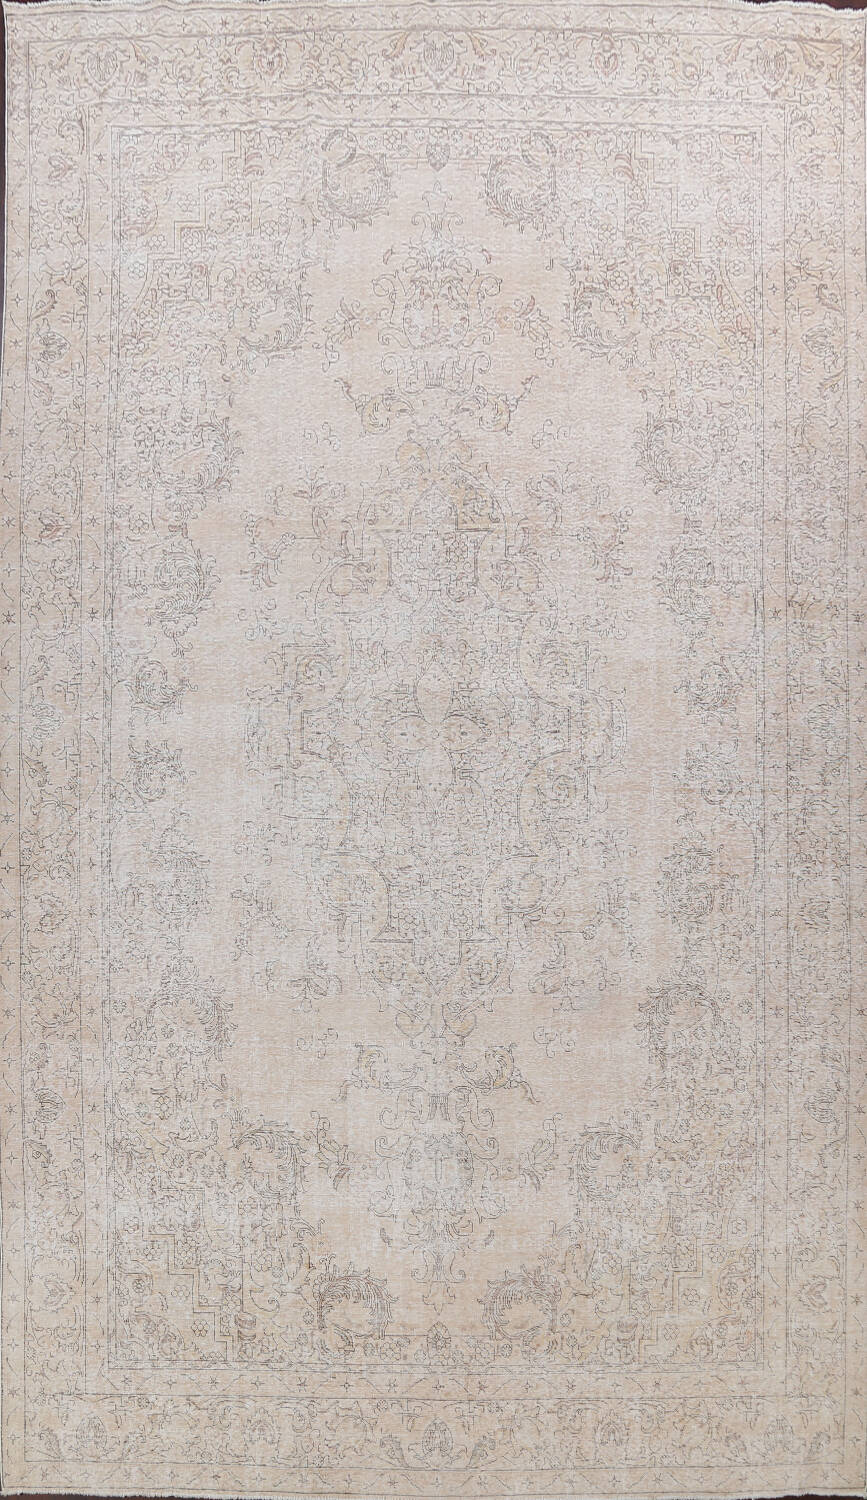 Antique Muted Distressed Tabriz Persian Area Rug 10x16 Large image 1